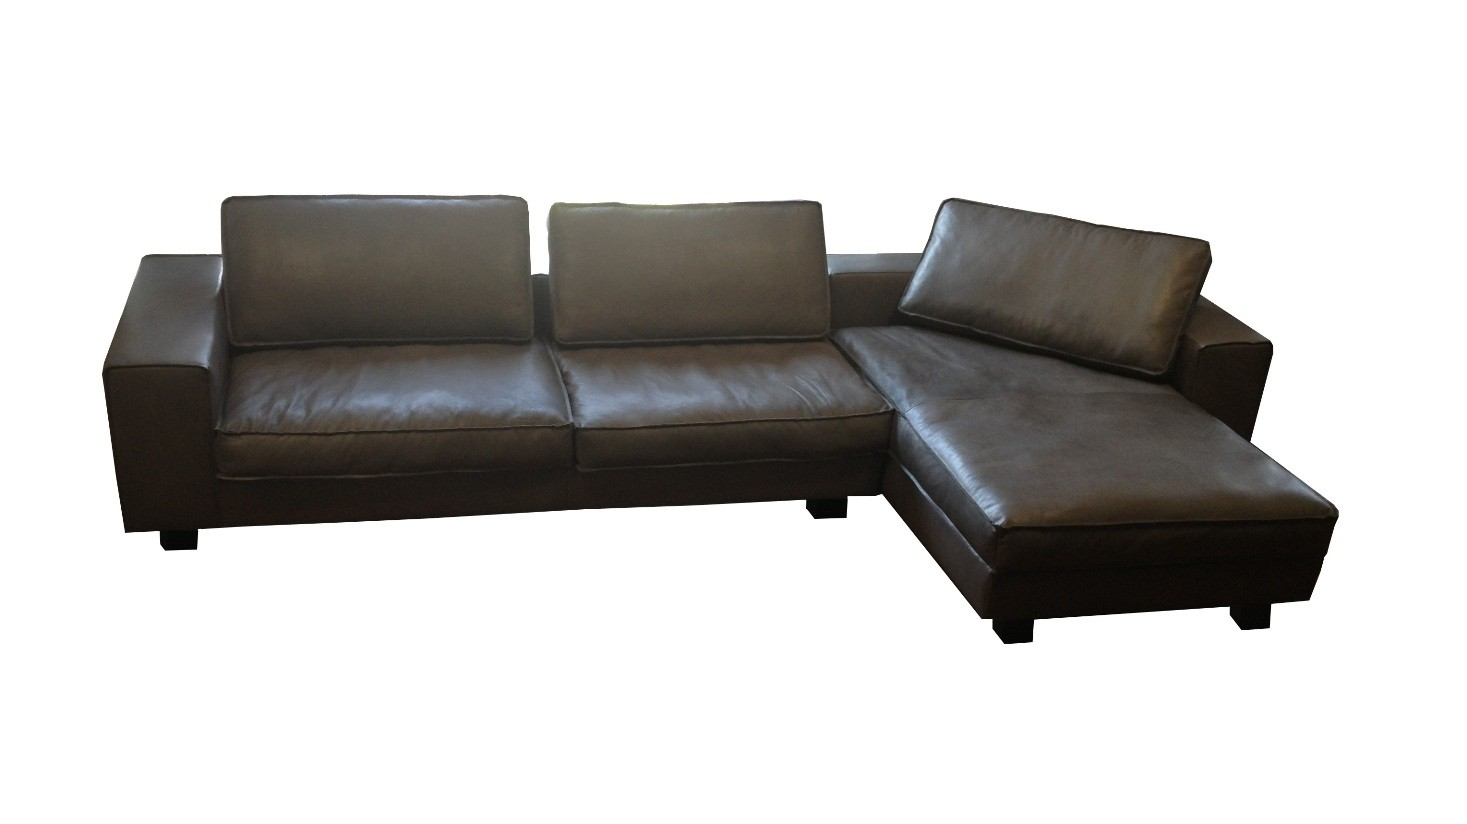 Schlafsofa ecksofa leder  TM Collections Long Beach Sofa. hochwertige Leder Couches bei ...